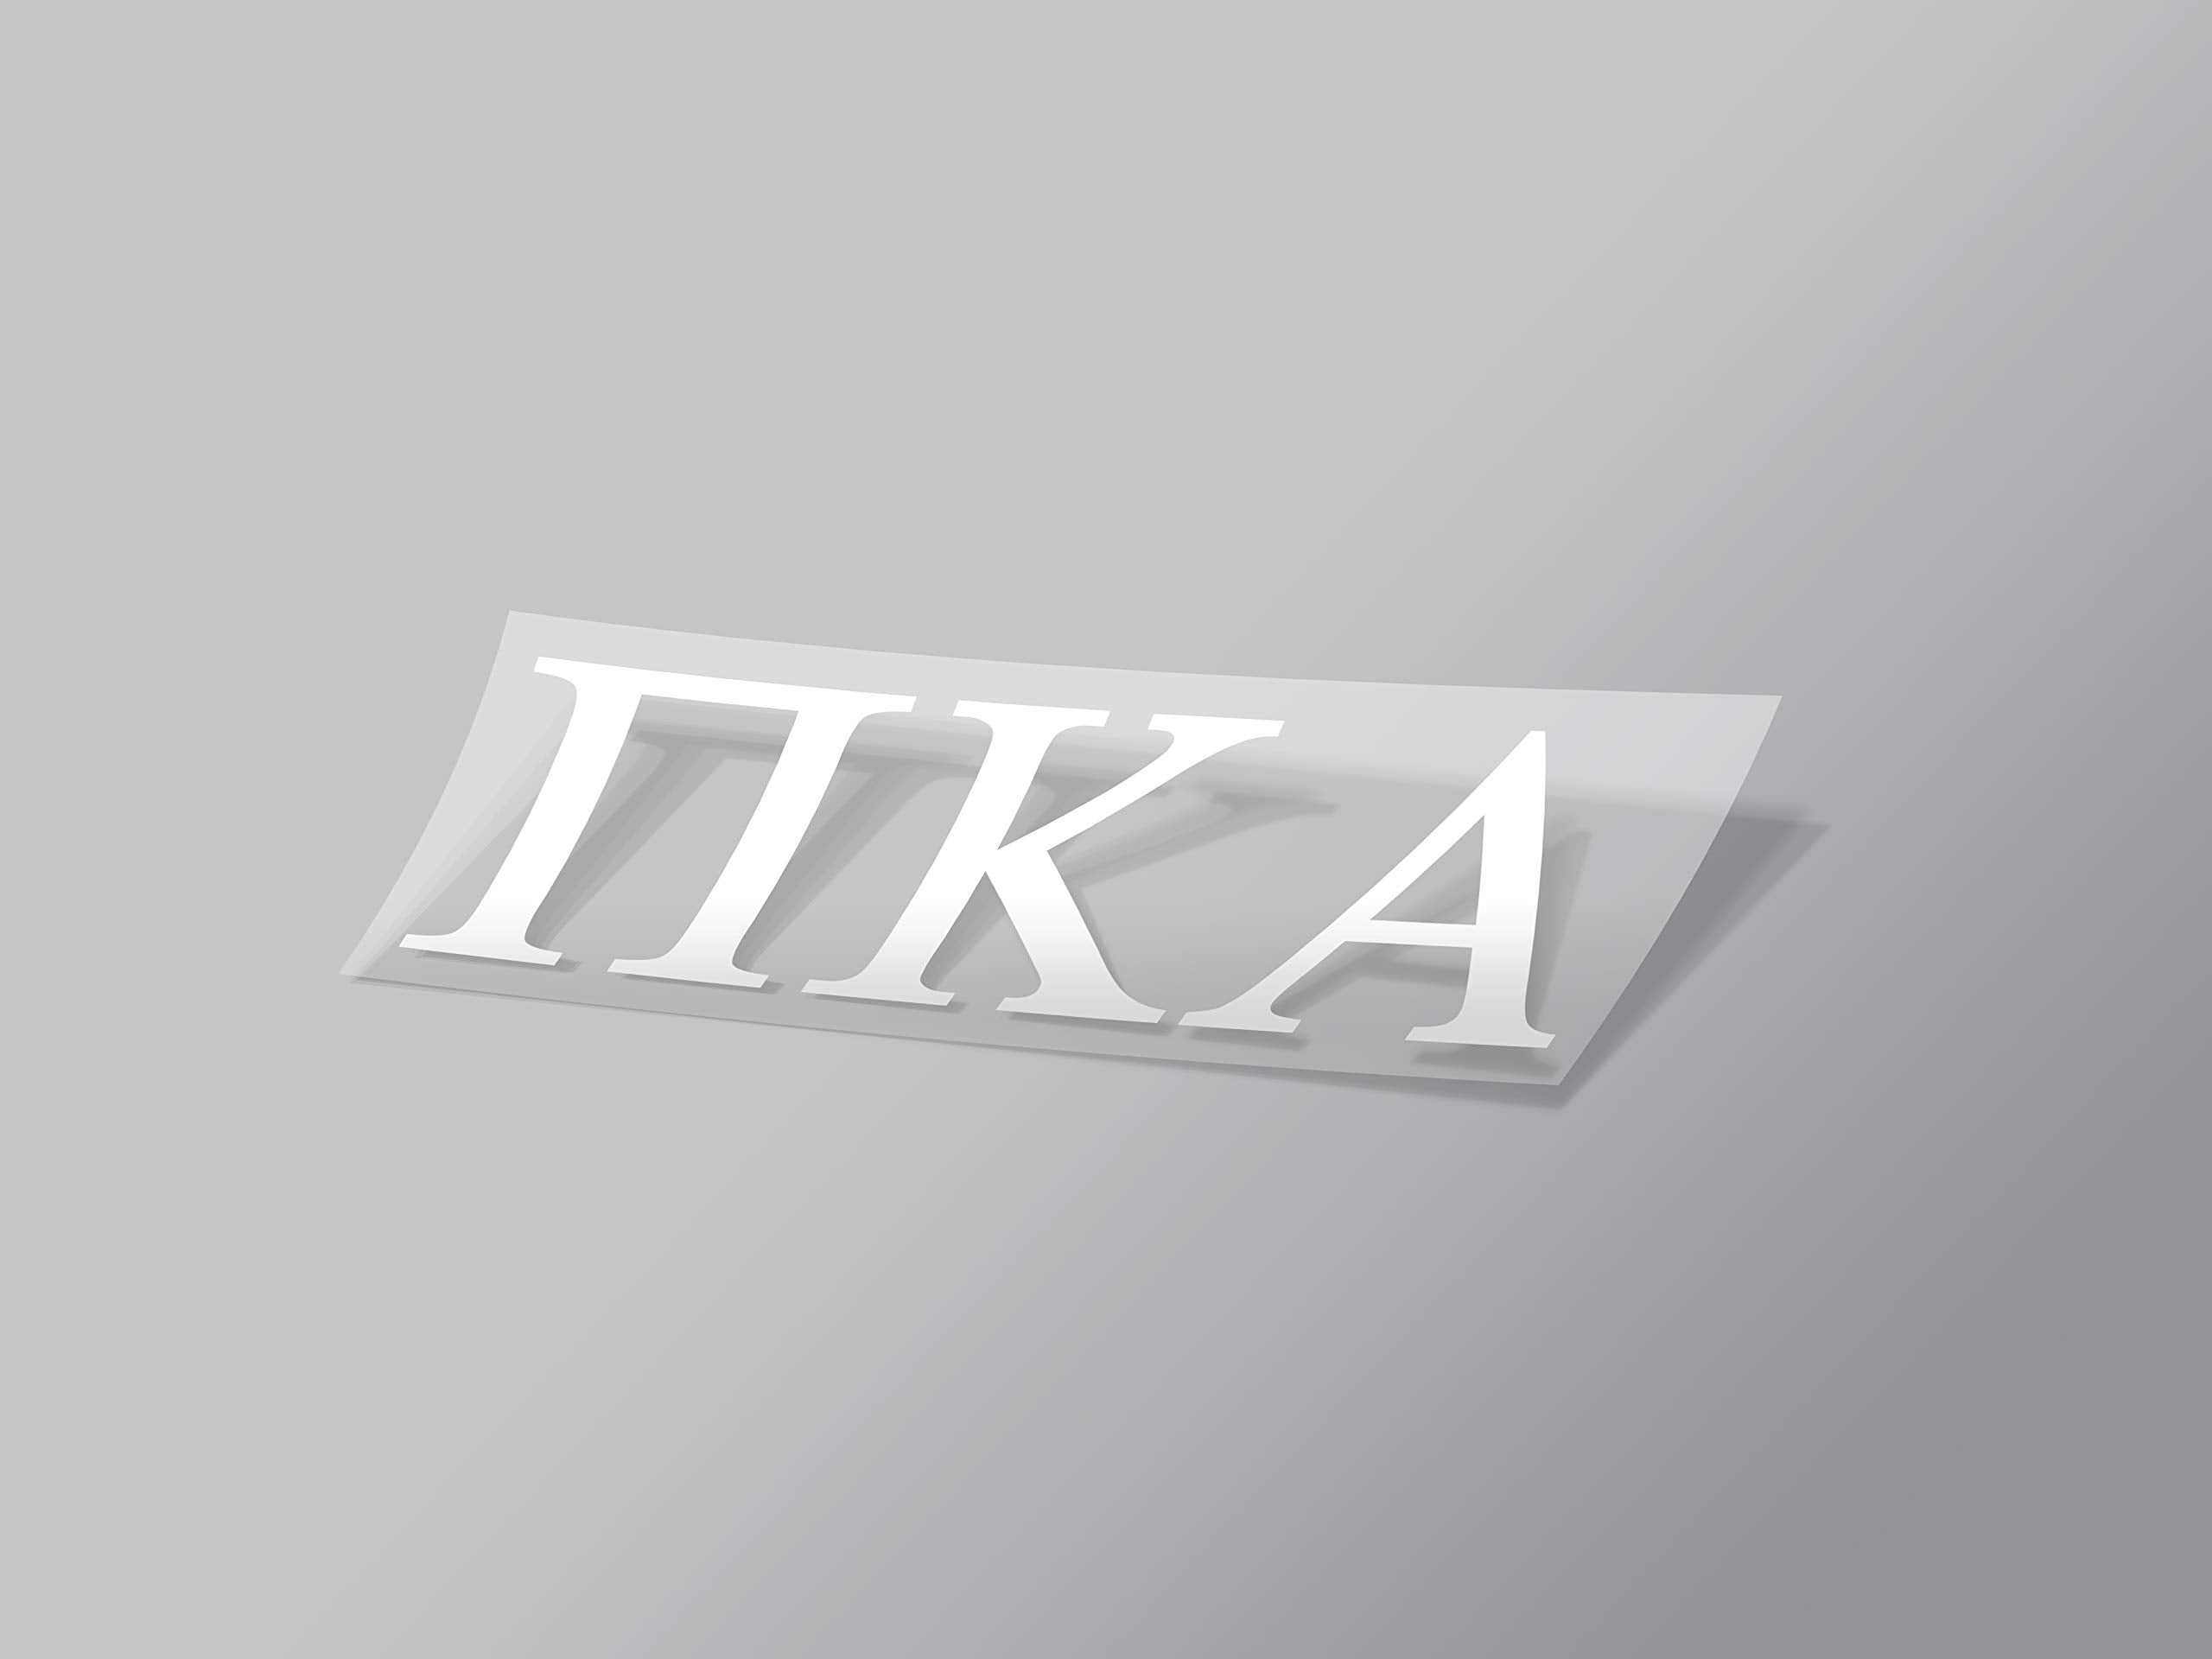 "Pi Kappa Alpha Sticker Greek Sorority Decal for Car, Laptop, Windows, Officially Licensed Product, Monogram Design 2.5"" Tall - White"